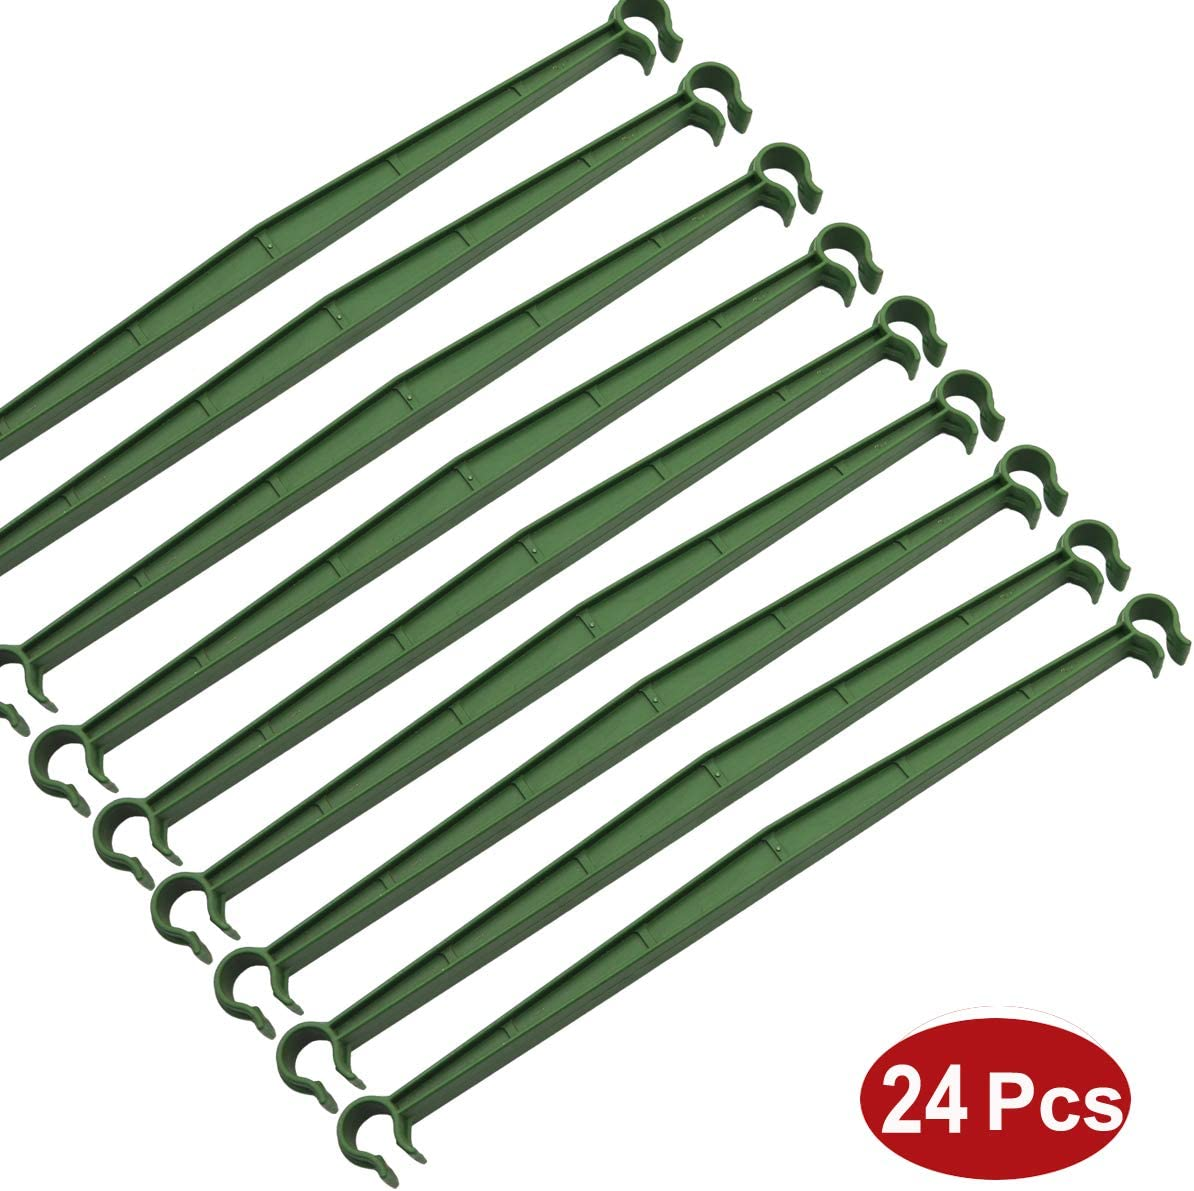 Amgate 24 Pcs Stake Arms for Tomato Cage, 11.8 Inches Expandable Trellis Connectors for Any 11mm Diameter Plant Stakes, 2 Buckle Adjustable for Climbing Plants, Vegetables, Flowers, Vine, Fruits